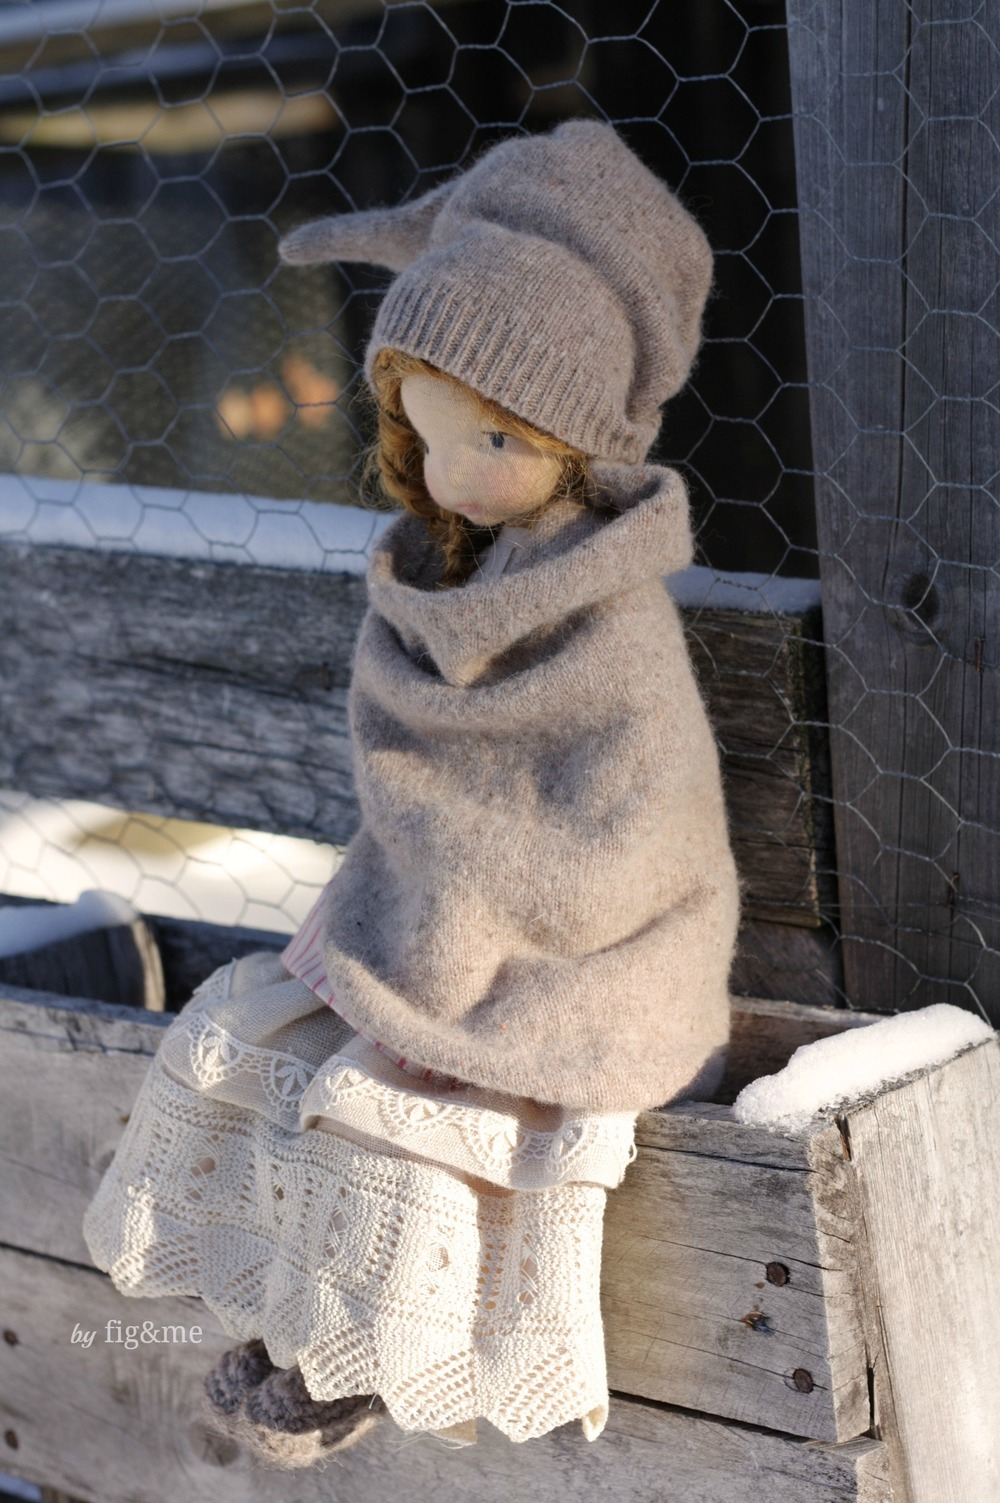 Melina in her winter clothes, a Mannikin style, natural fiber art doll by Fig and me. Wearing victorian lace and Merino clothing.